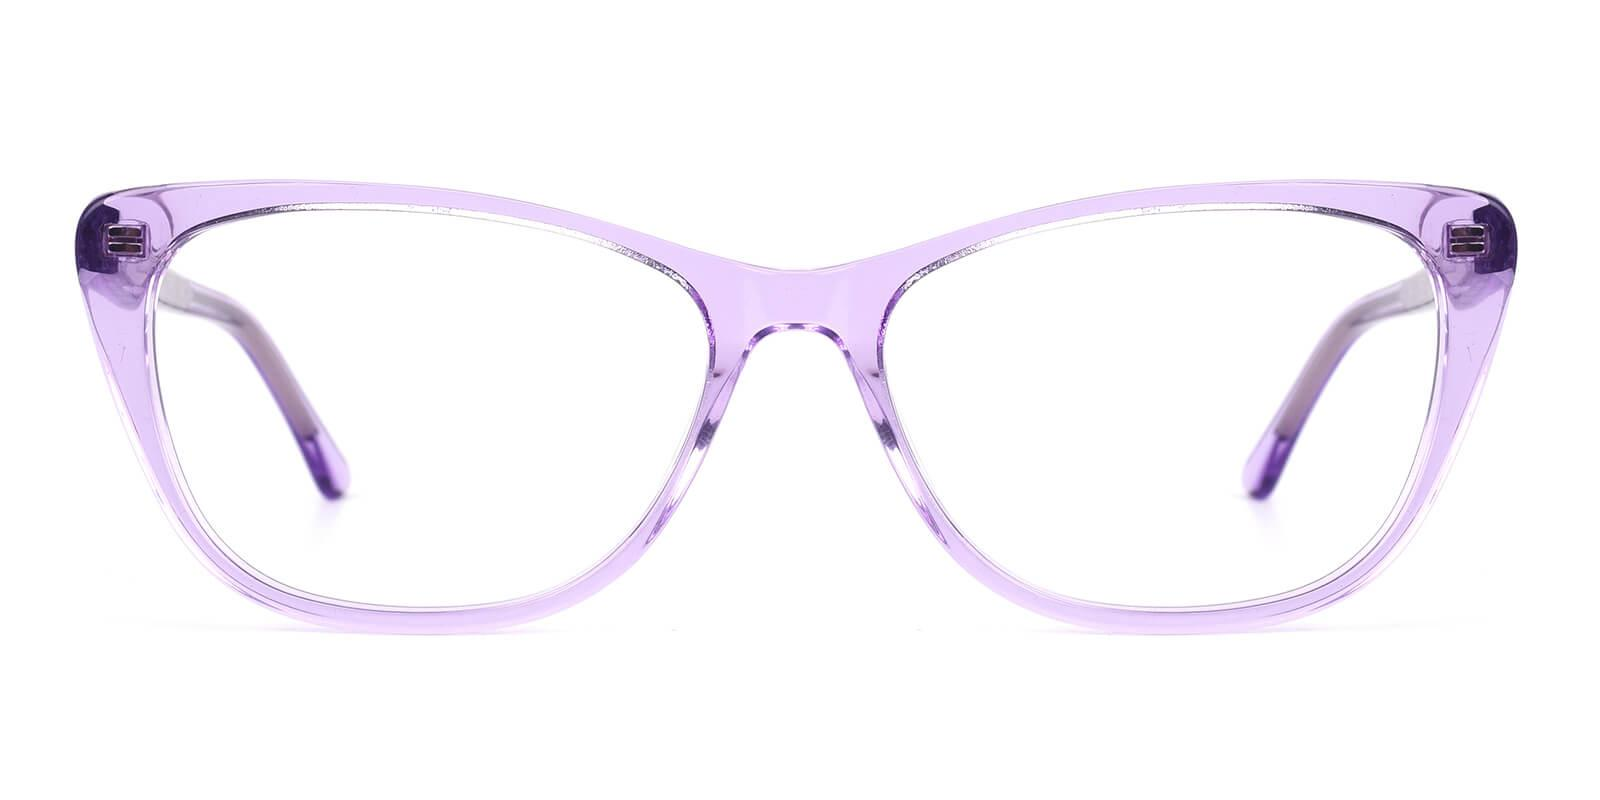 Tersaki-Purple-Cat-Acetate-Eyeglasses-additional2